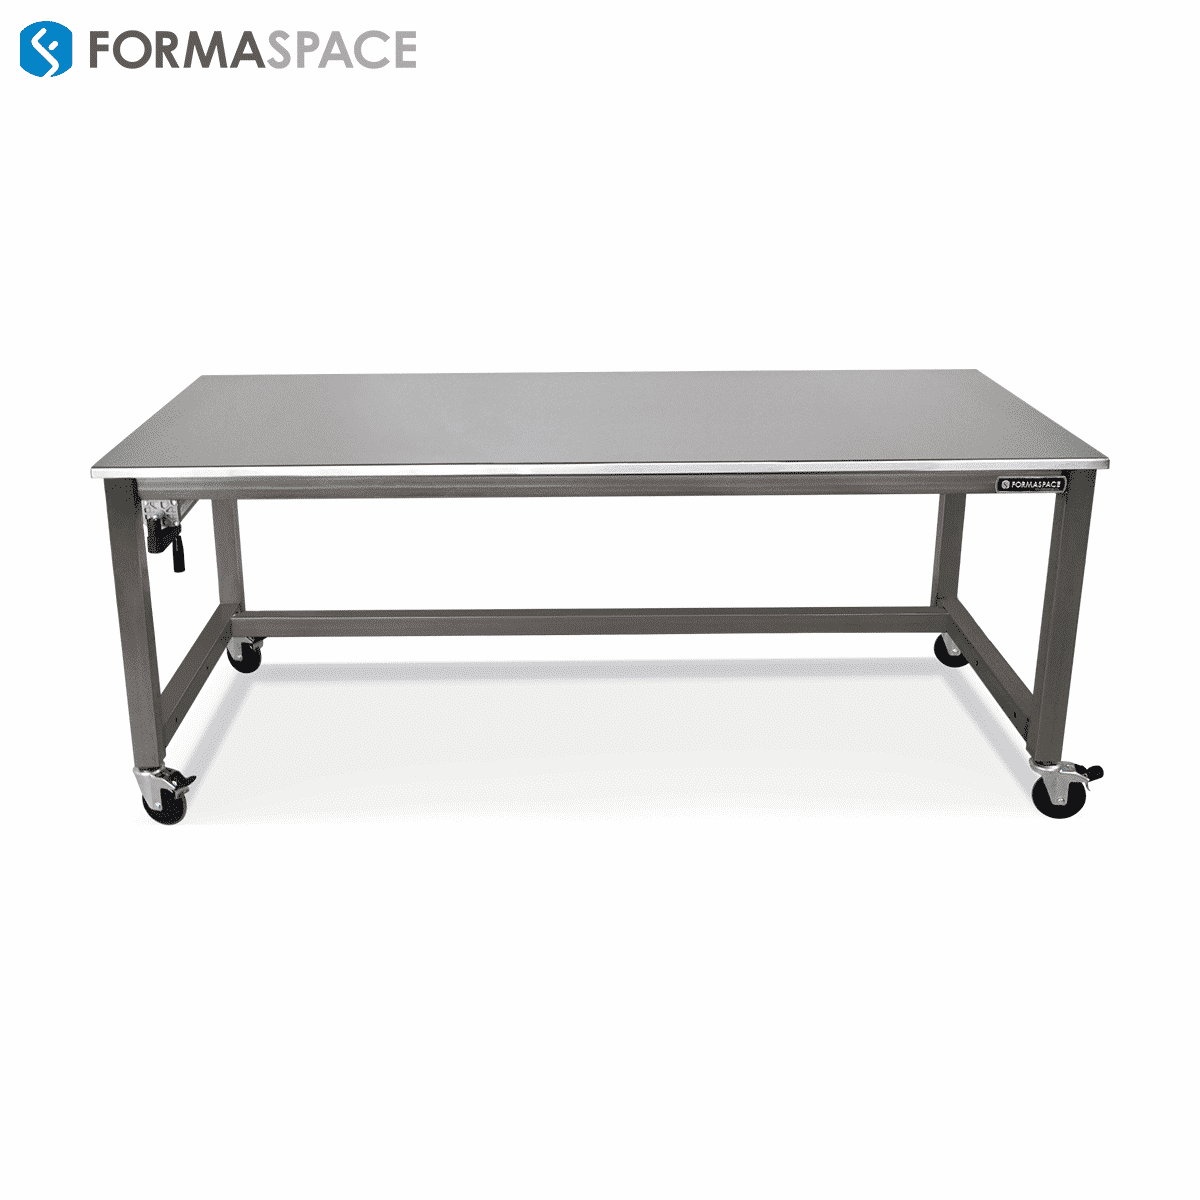 ss work surface welded steel frame